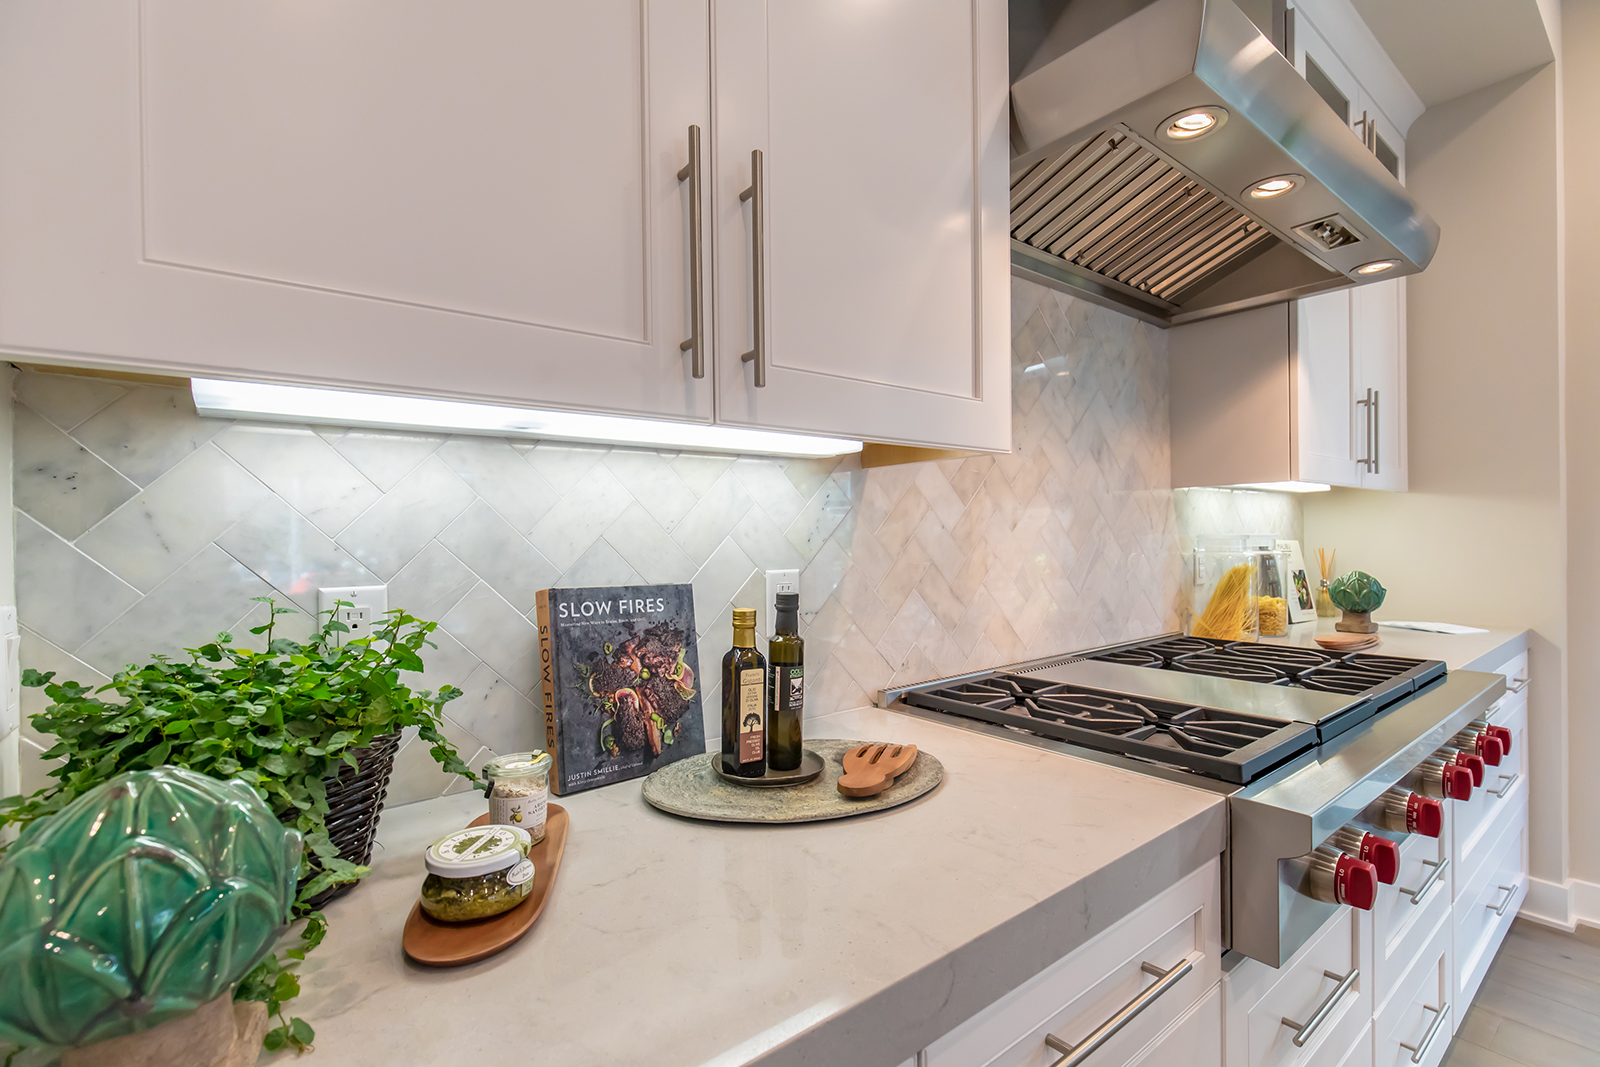 residence-2-kitchen-new-home-los-angeles-california-the-collection-at-playa-vista-1600.jpg